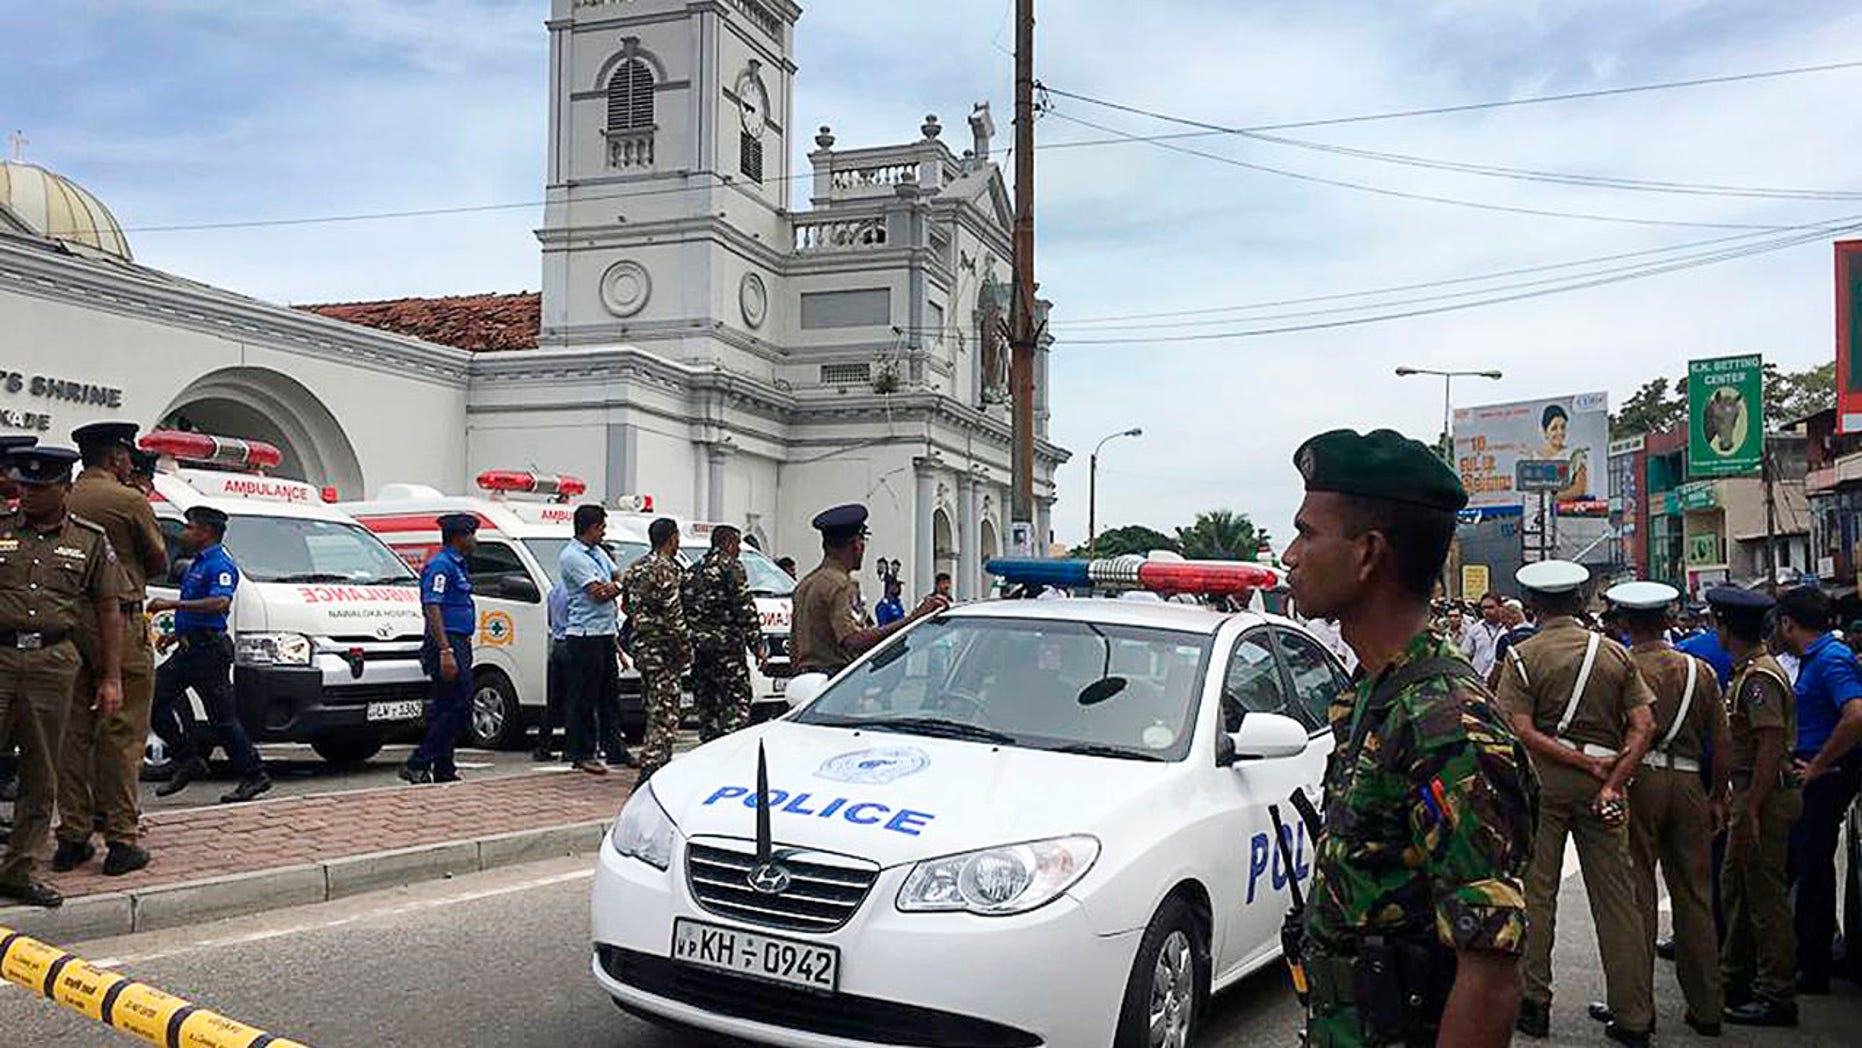 Sri Lankan Army soldiers secure the area around St. Anthony's Shrine after a blast in Colombo, Sri Lanka, Sunday, April 21, 2019. (Associated Press)